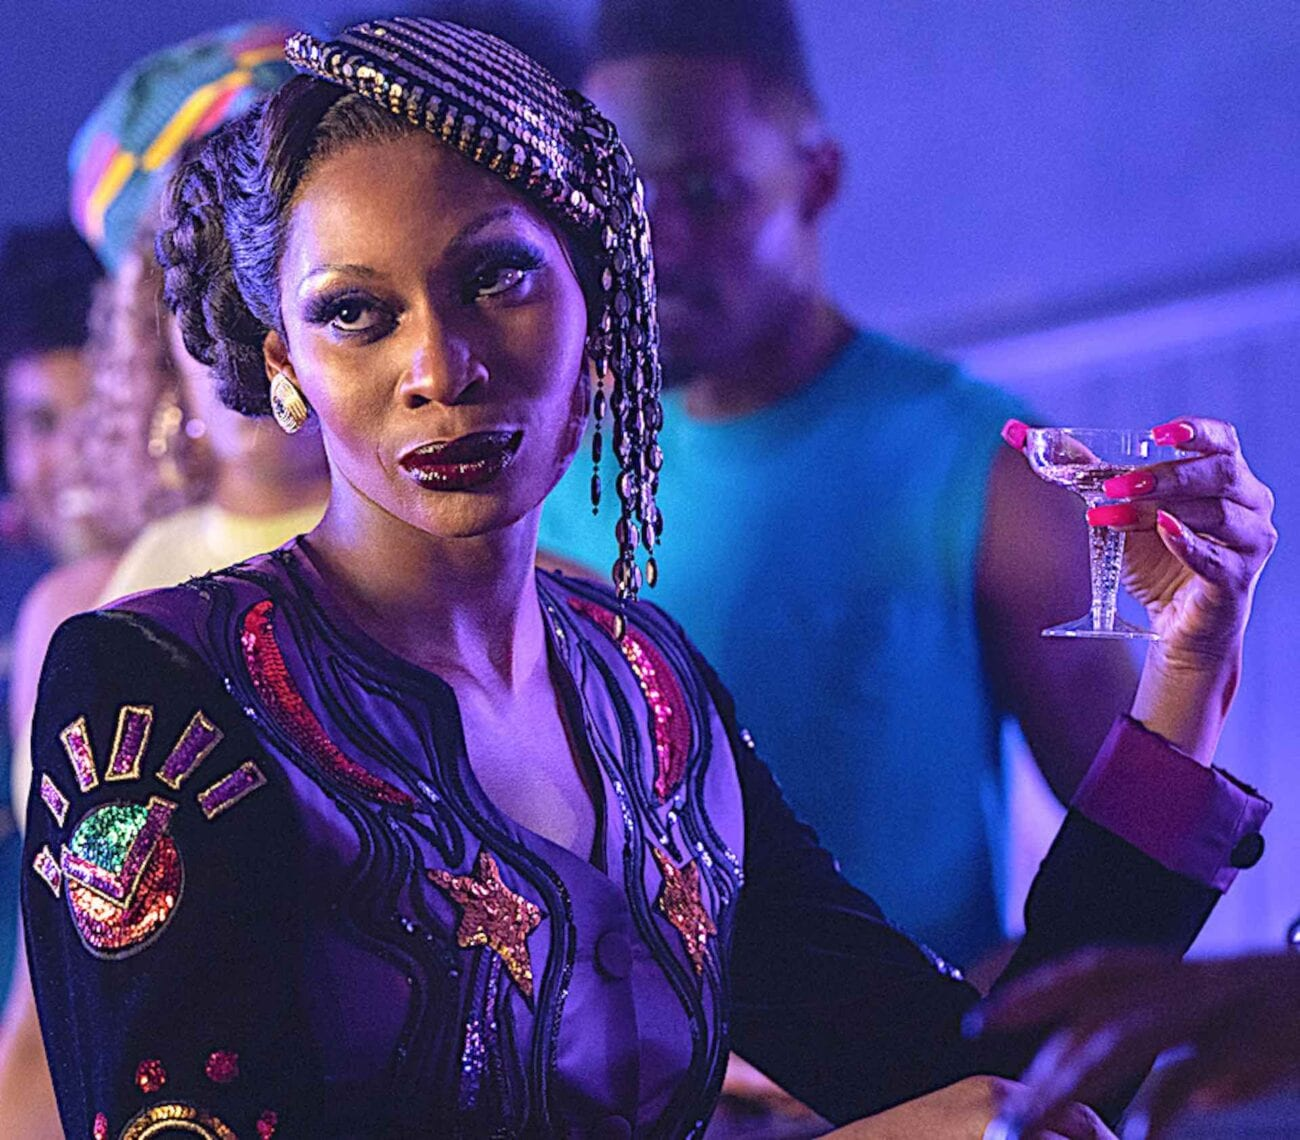 Cast member Elektra is the drag mother of all drag mothers, serving stunning looks in every episode of 'Pose'. Here are a few favorite lewks.